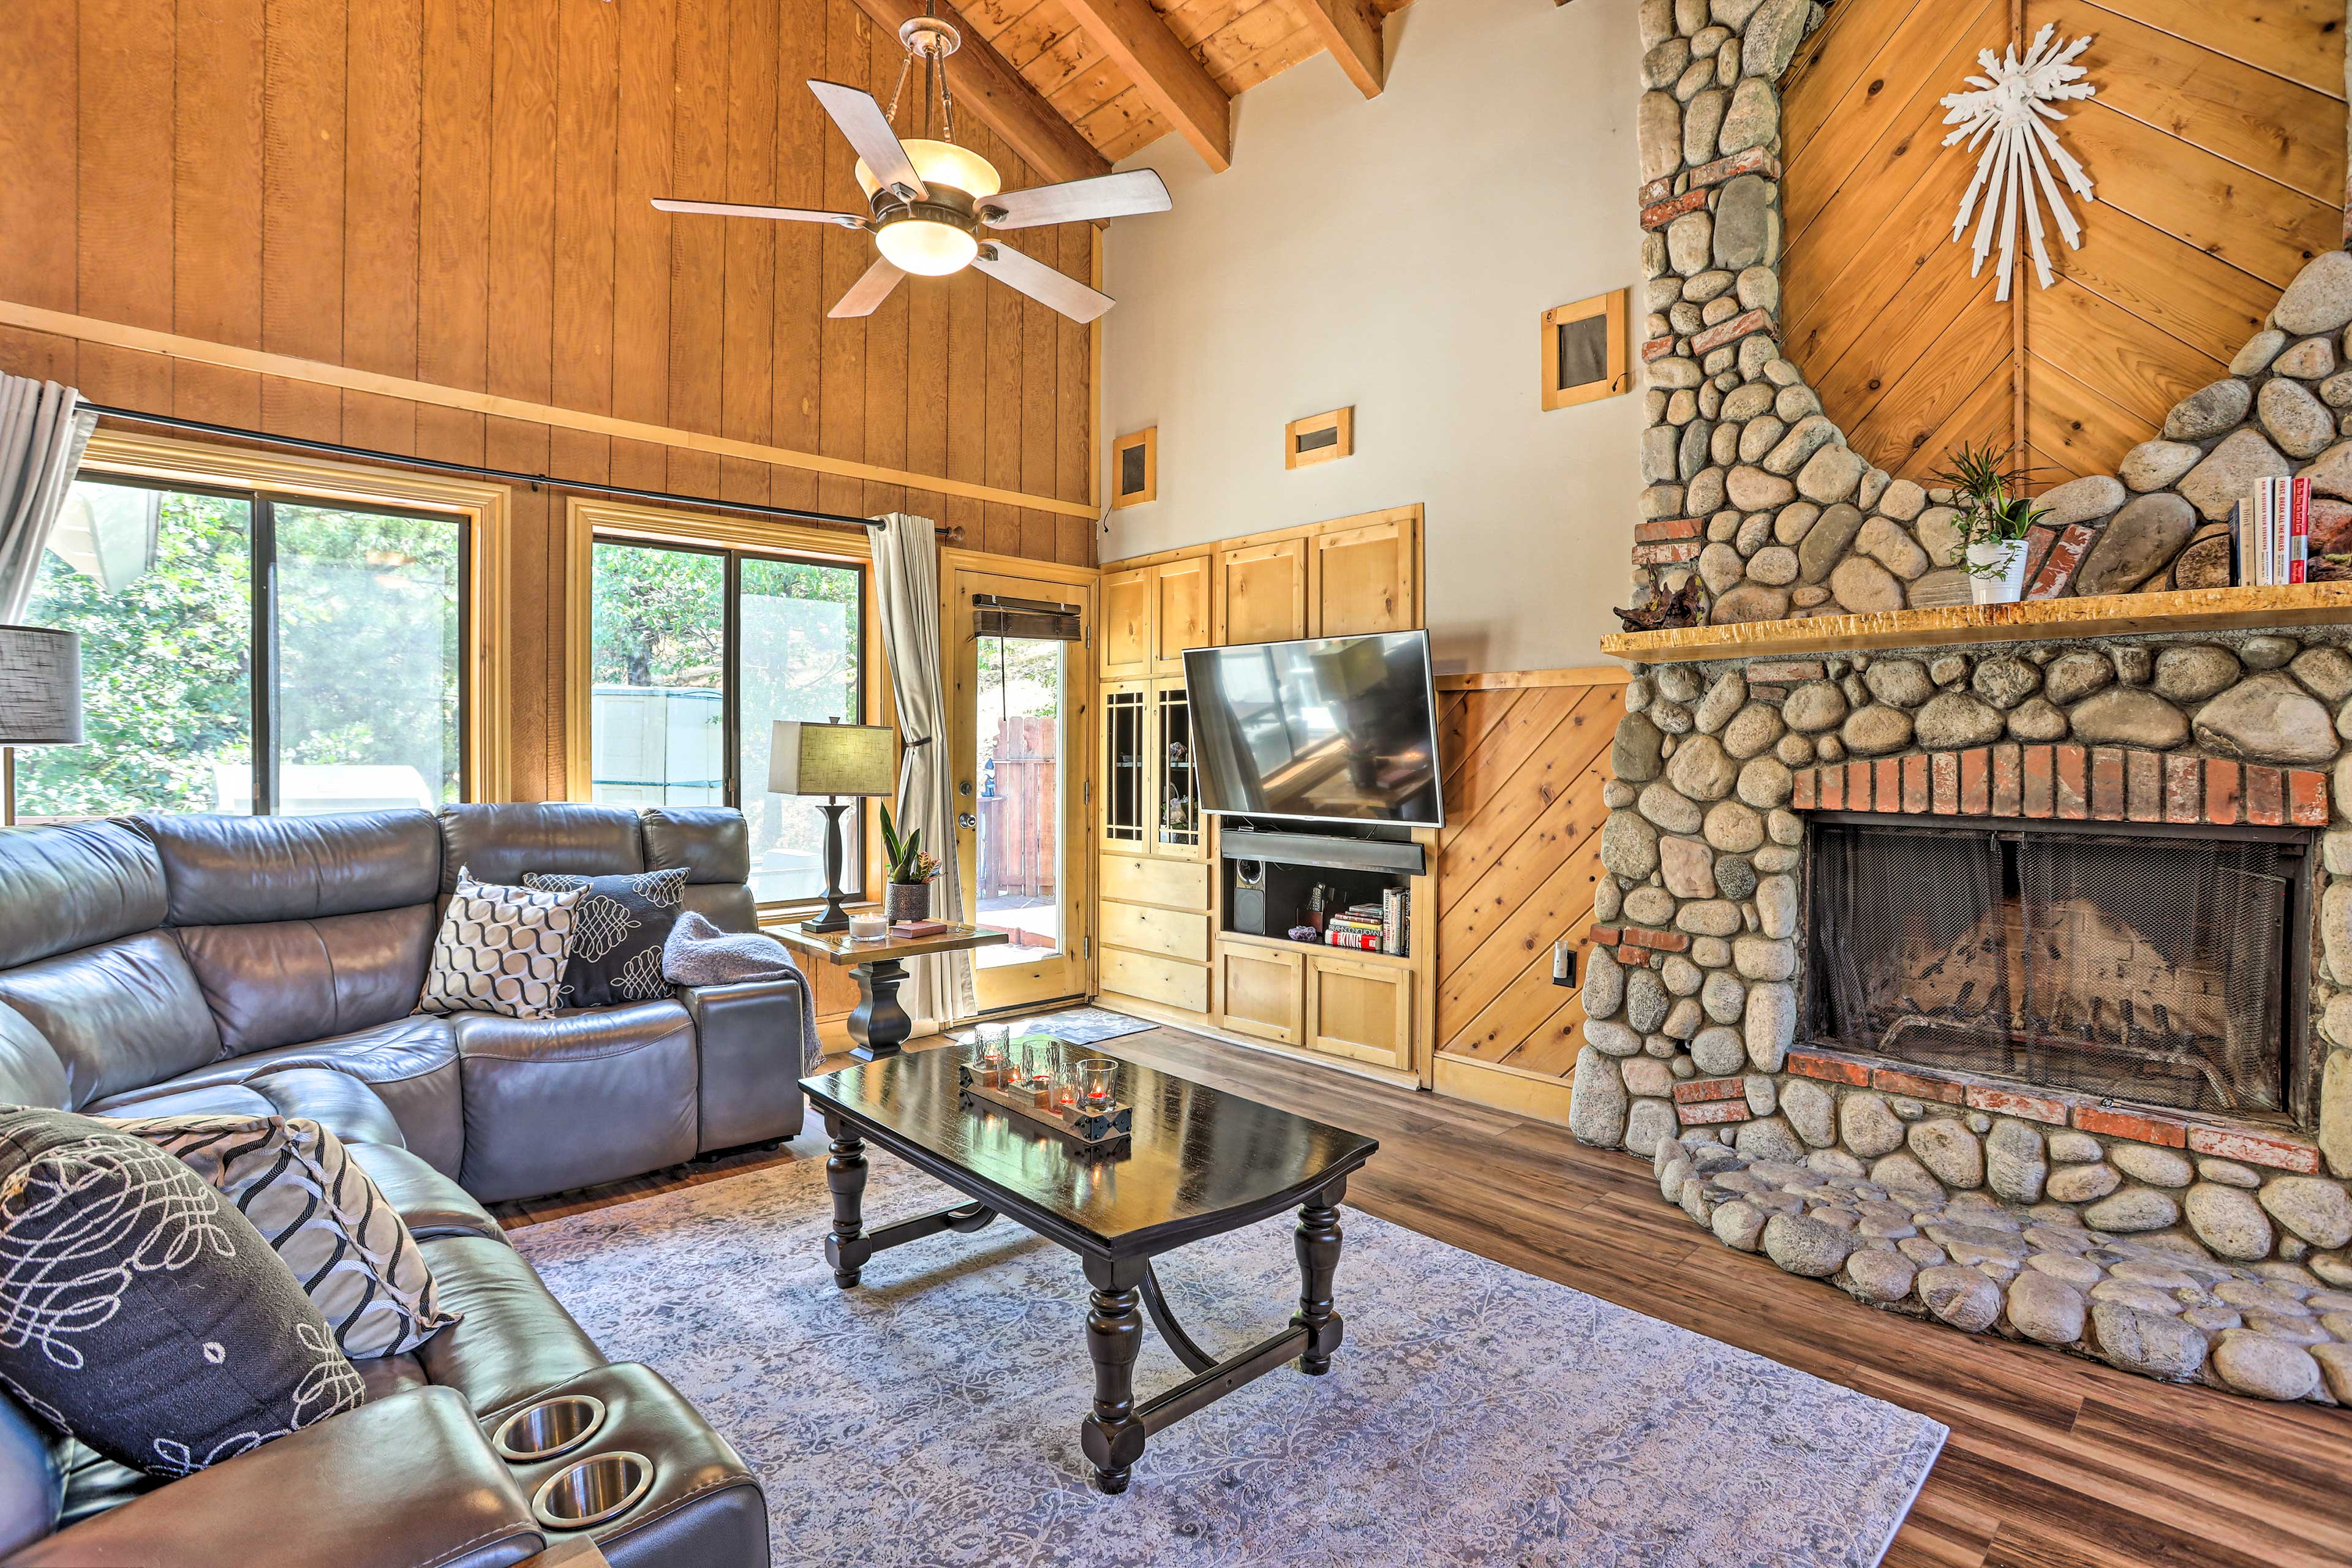 Lake Arrowhead Vacation Rental | 3BR | 2BA | 1,746 Sq Ft | Stairs Required